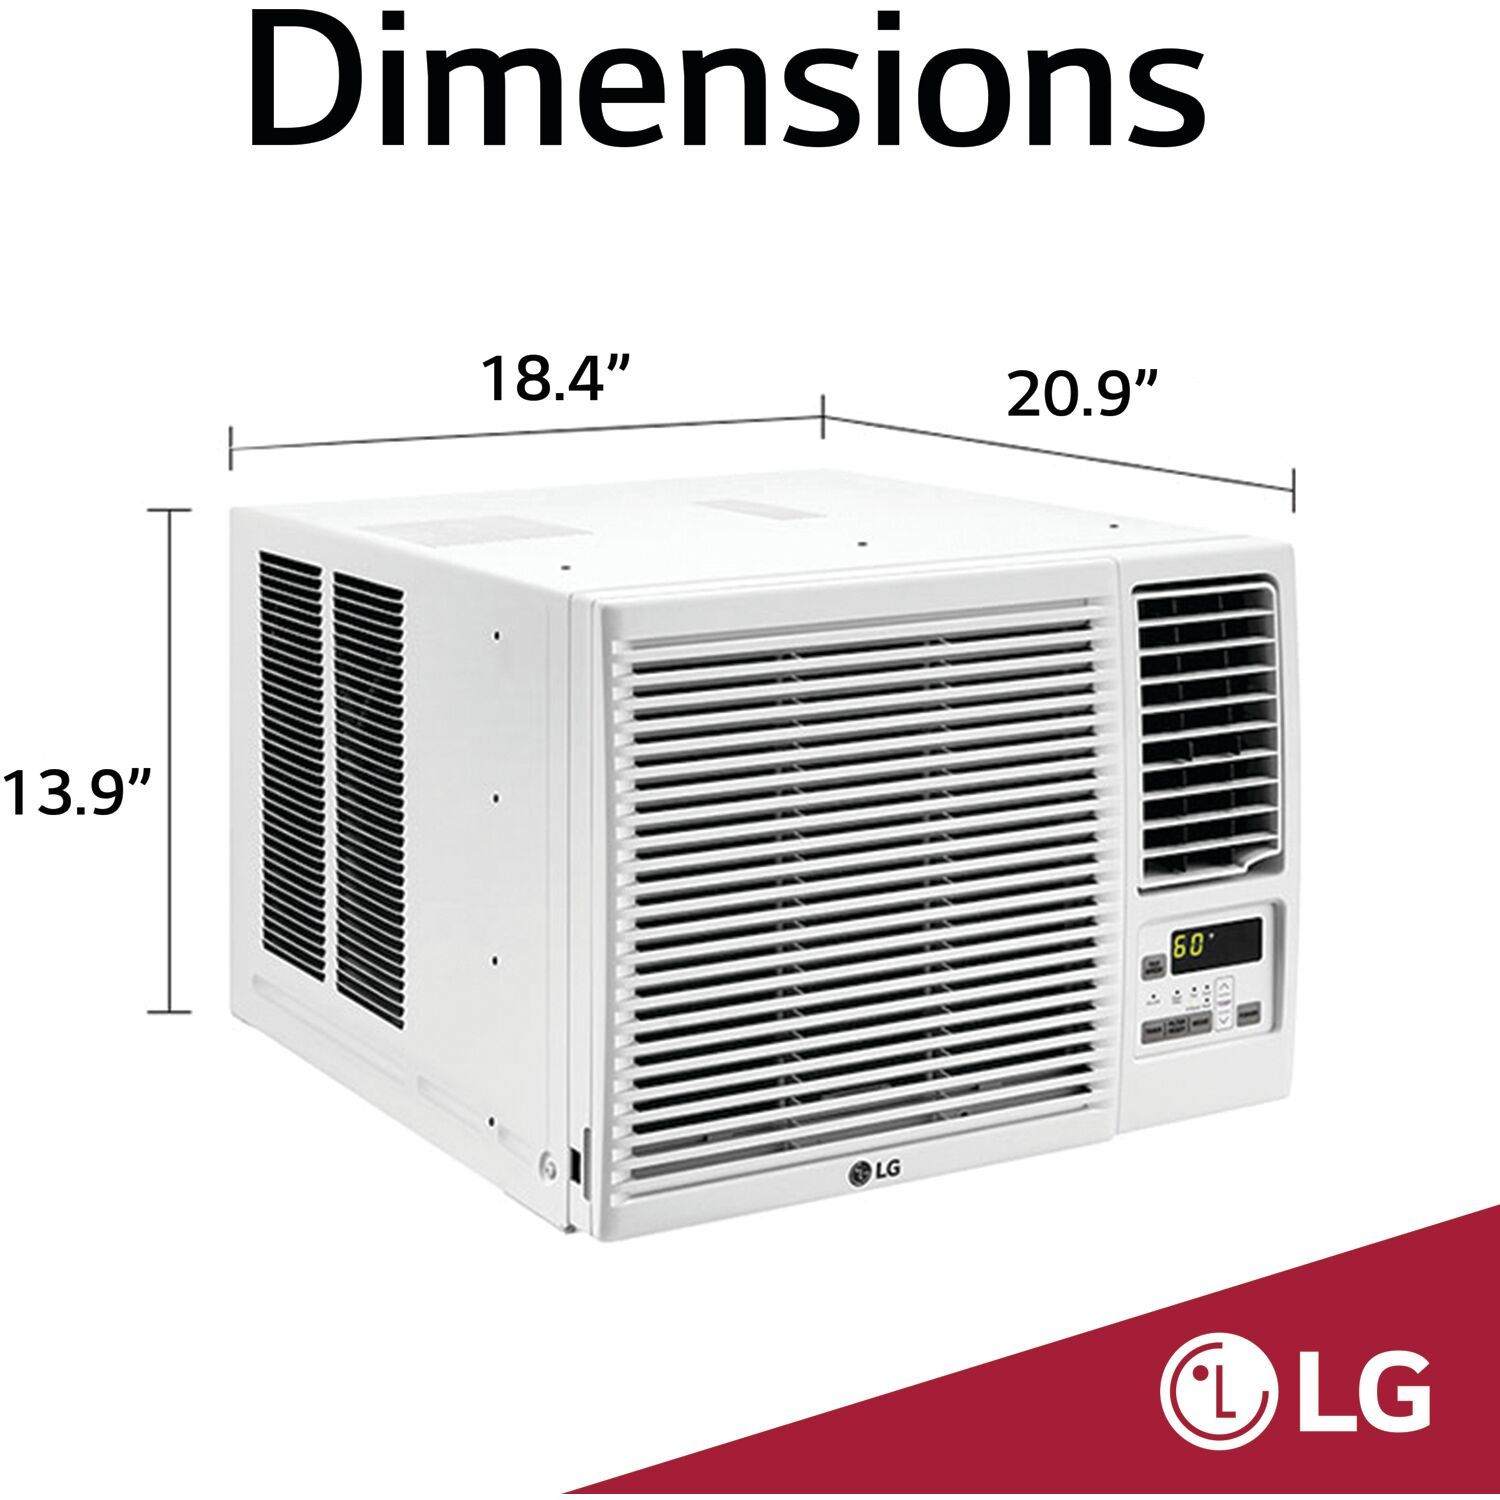 Lg 7 500 Btu 115v Window Mounted Air Conditioner With 3 850 Btu Supplemental Heat Function Walma In 2020 Supplemental Heat Window Air Conditioner Reusable Air Filter